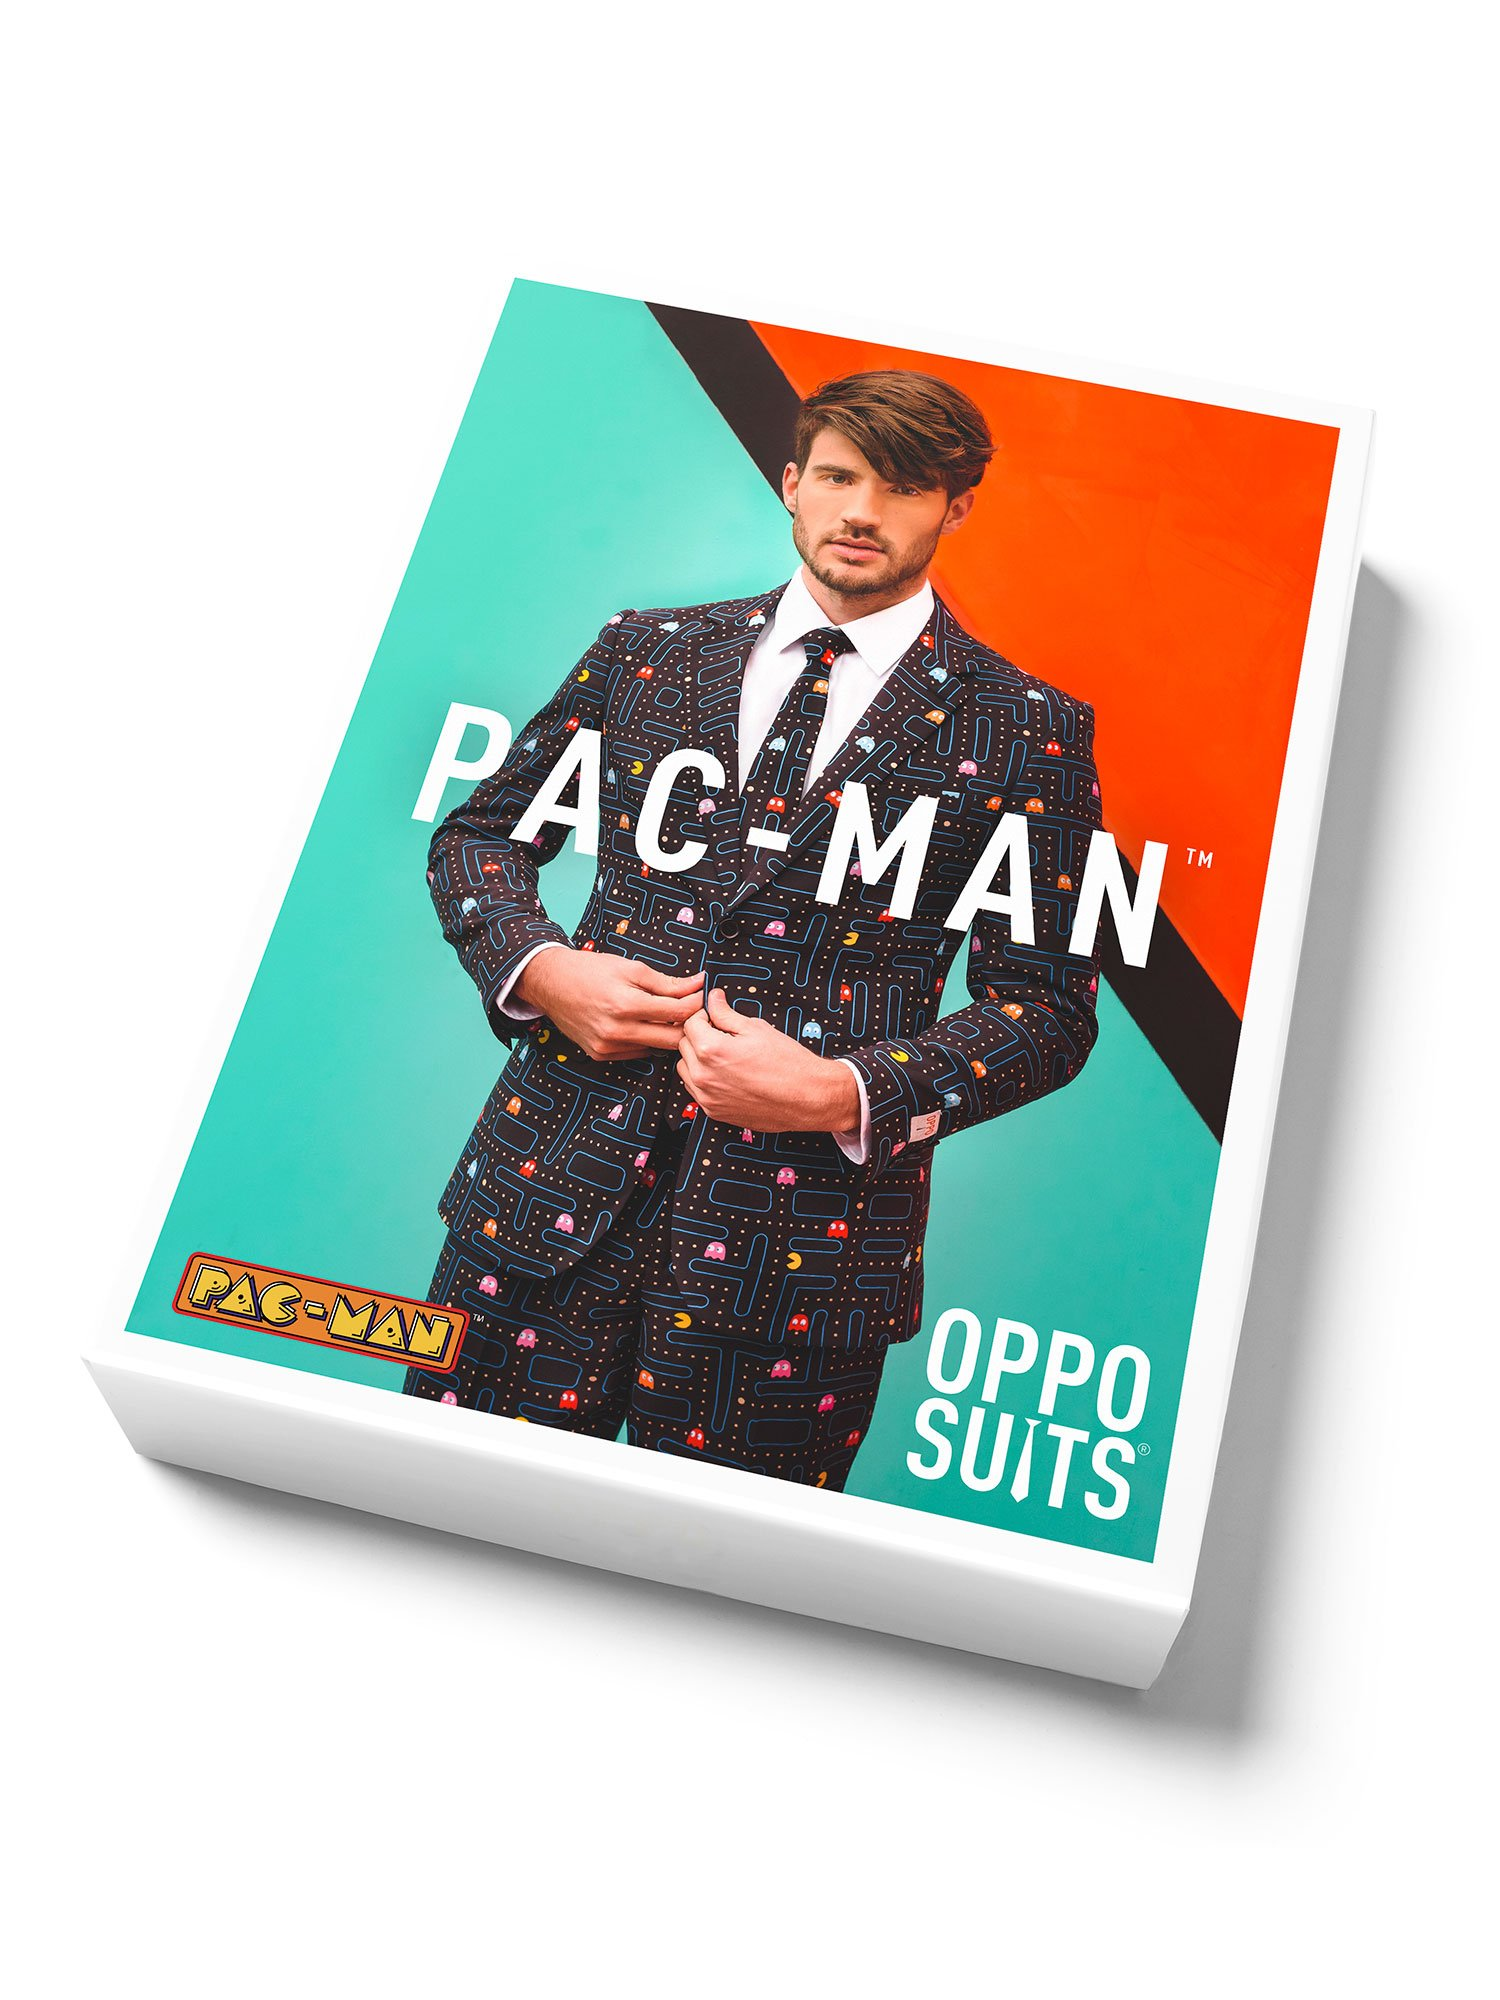 Opposuits Fancy Colored Suit For Men Now With Free Prom King and Prom Queen Sash,Pac-manTM,US44 by Opposuits (Image #6)